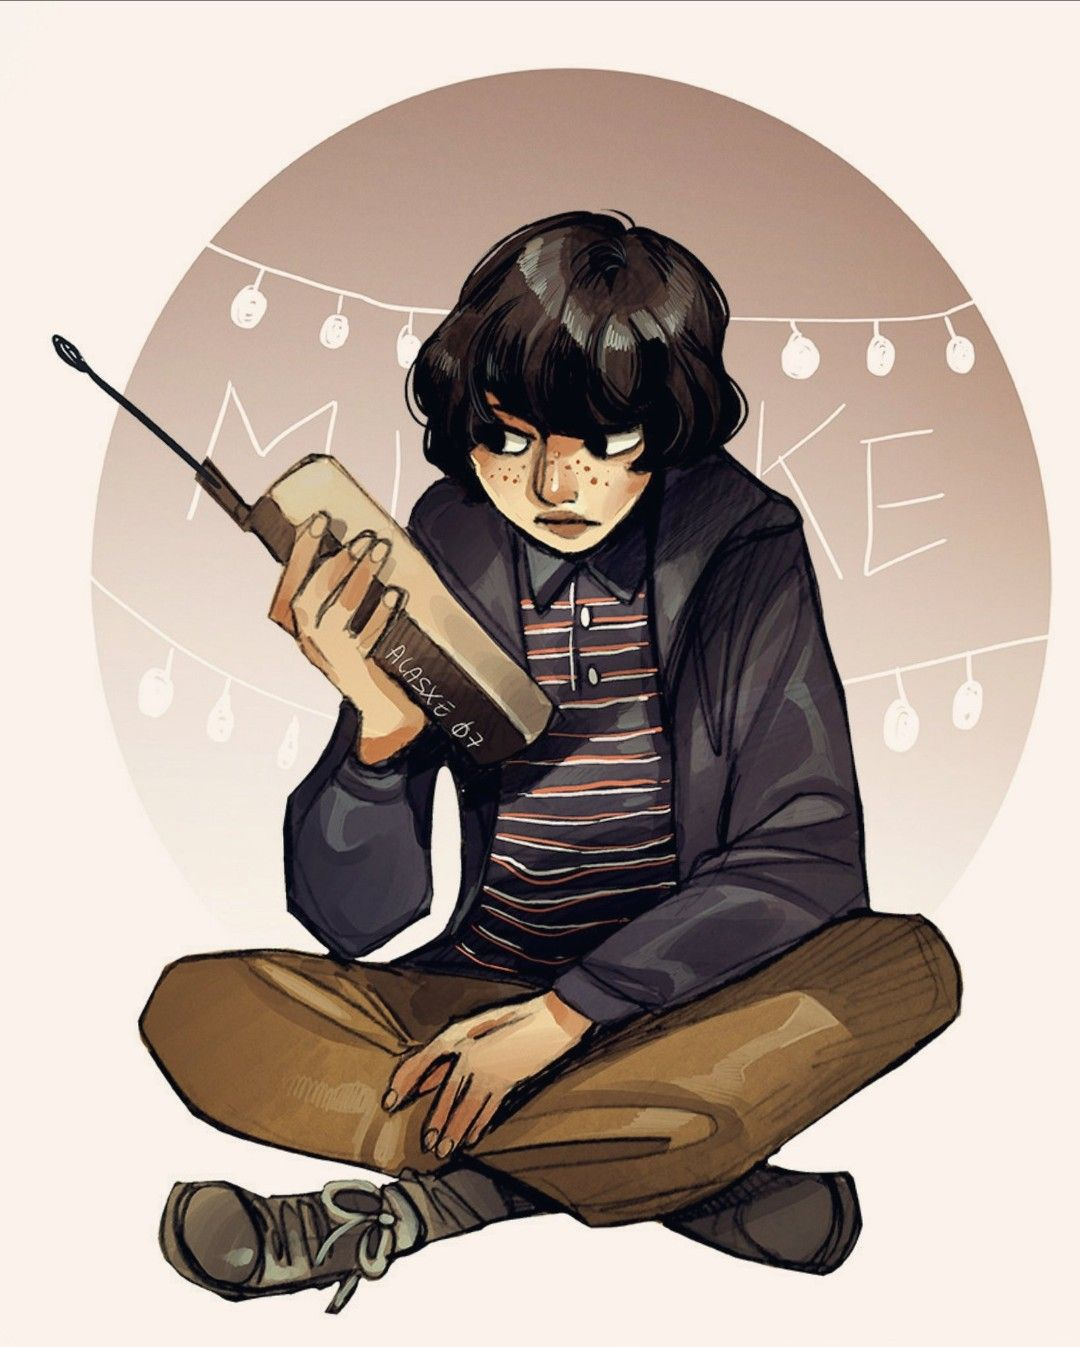 Pour Mike All He Wants Is Eleven Back Or To Speak Hear Her Sweet Voice Stranger Things Mike Stranger Things Poster Stranger Things Fanart